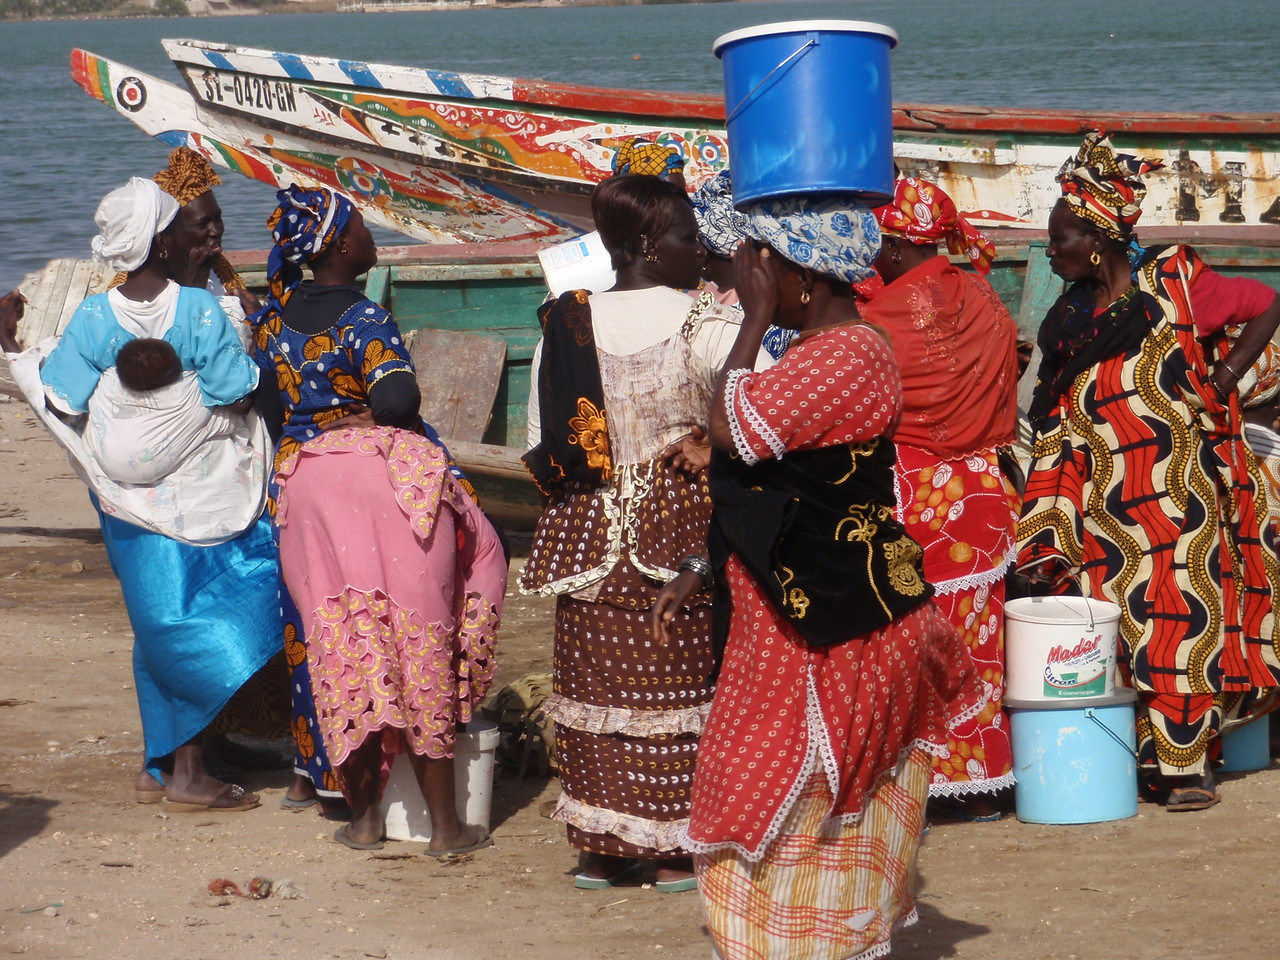 111_Fisherman District  Ladies Buying Fishes  Colourful Dresses